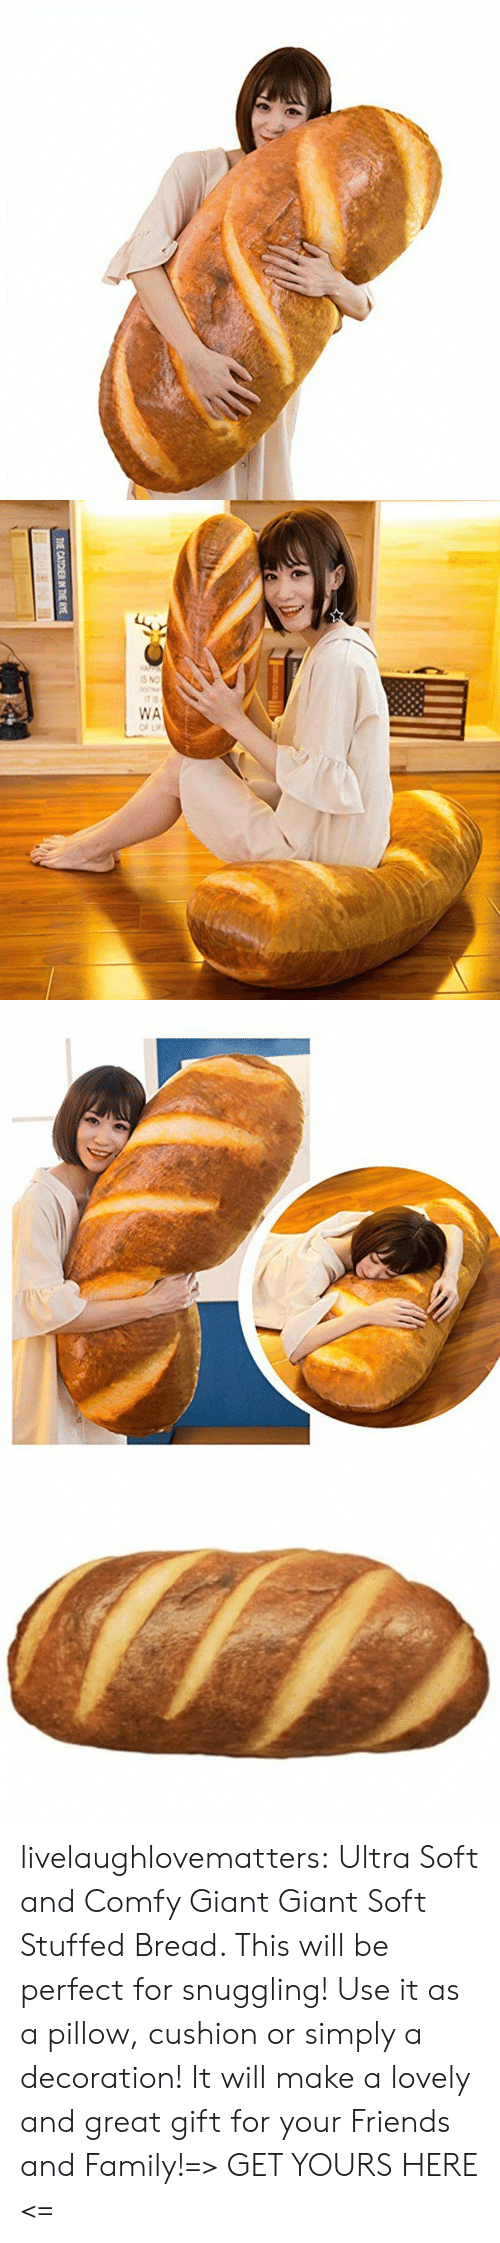 Decoration: THE CATCHER IN THE RYE livelaughlovematters:  Ultra Soft and Comfy Giant Giant Soft Stuffed Bread. This will be perfect for snuggling! Use it as a pillow, cushion or simply a decoration! It will make a lovely and great gift for your Friends and Family!=> GET YOURS HERE <=